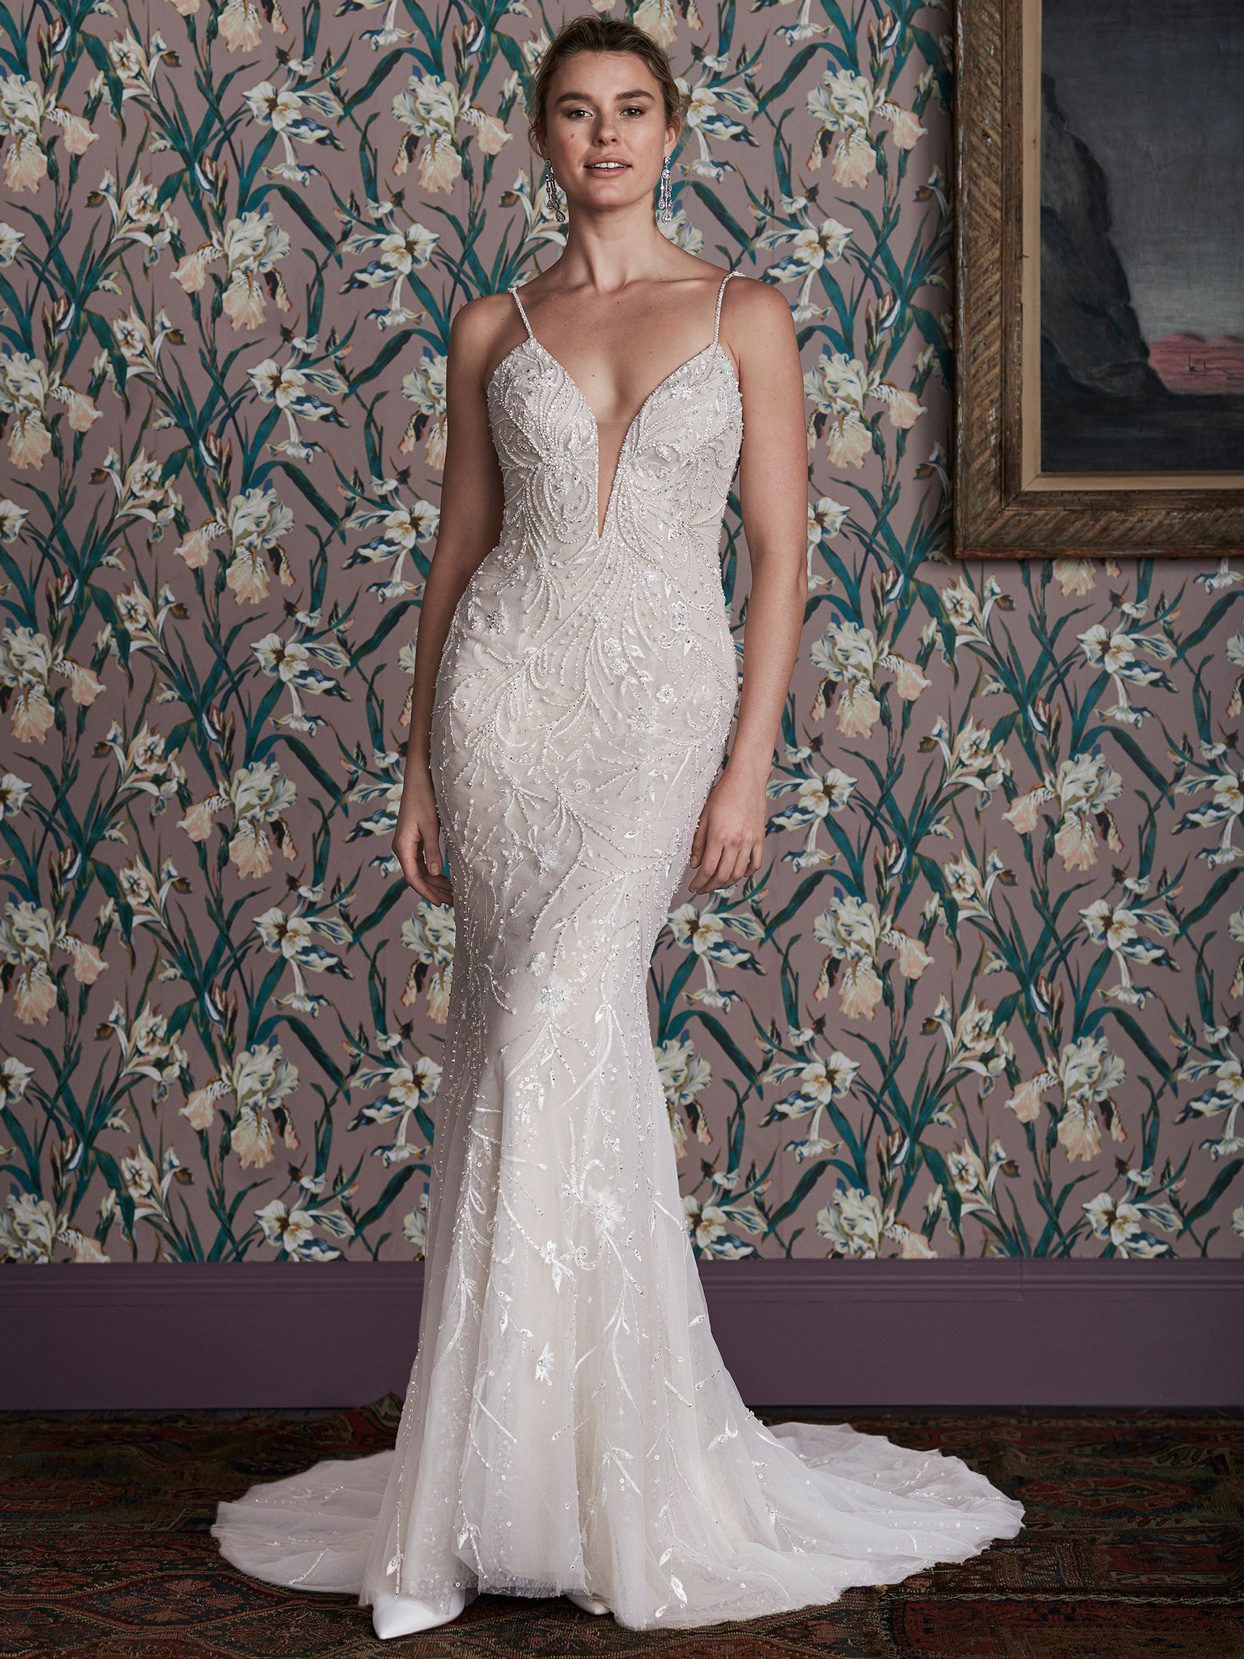 justin alexander plunging v-neck thin strap fitted wedding dress spring 2021